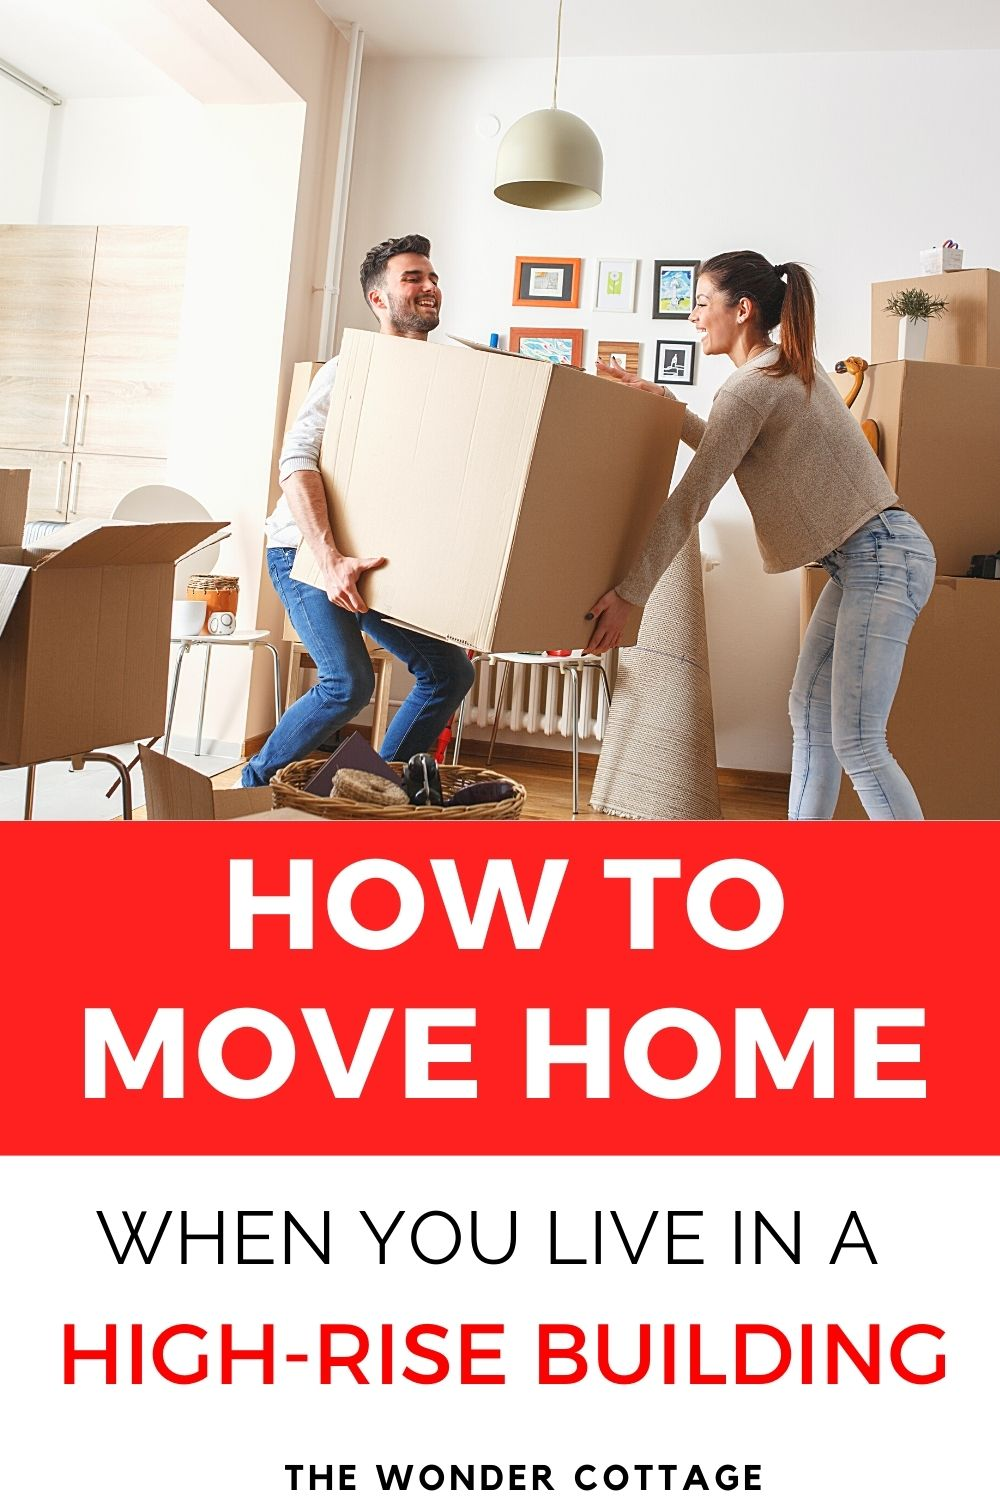 How to move home when you live in a high-rise building